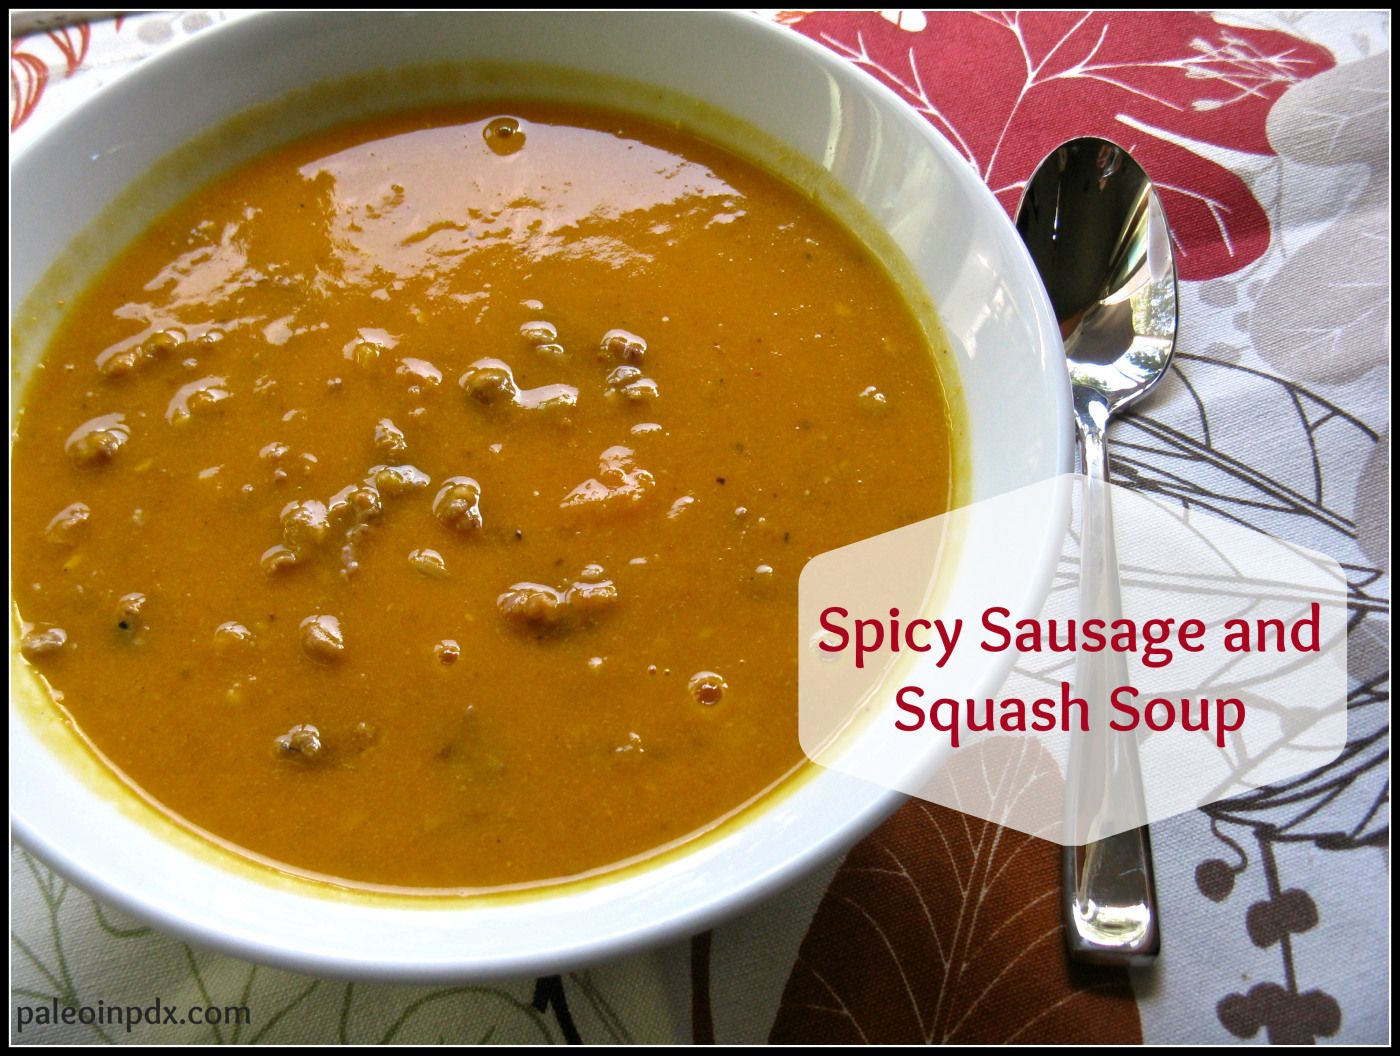 Spicy sausage and squash soup